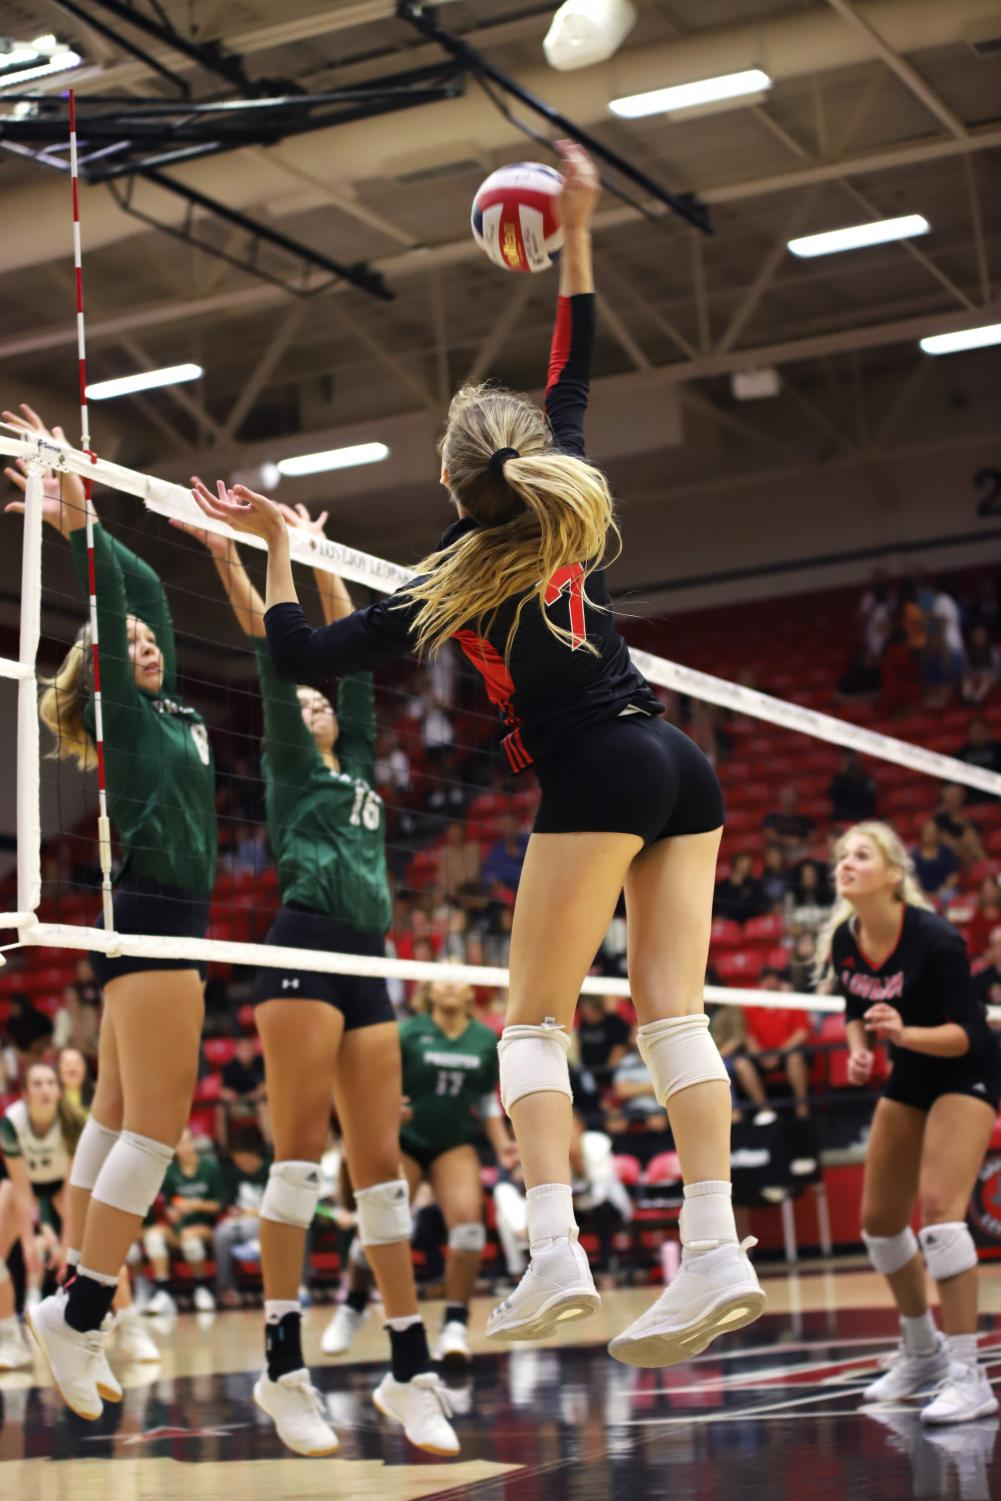 Junior+Ellie+Jonke+elevates+over+Prosper+defenders+to+get+the+kill.+The+Leopards+were+able+to+secure+the+victory+during+the+fourth+set+winning+25-21.